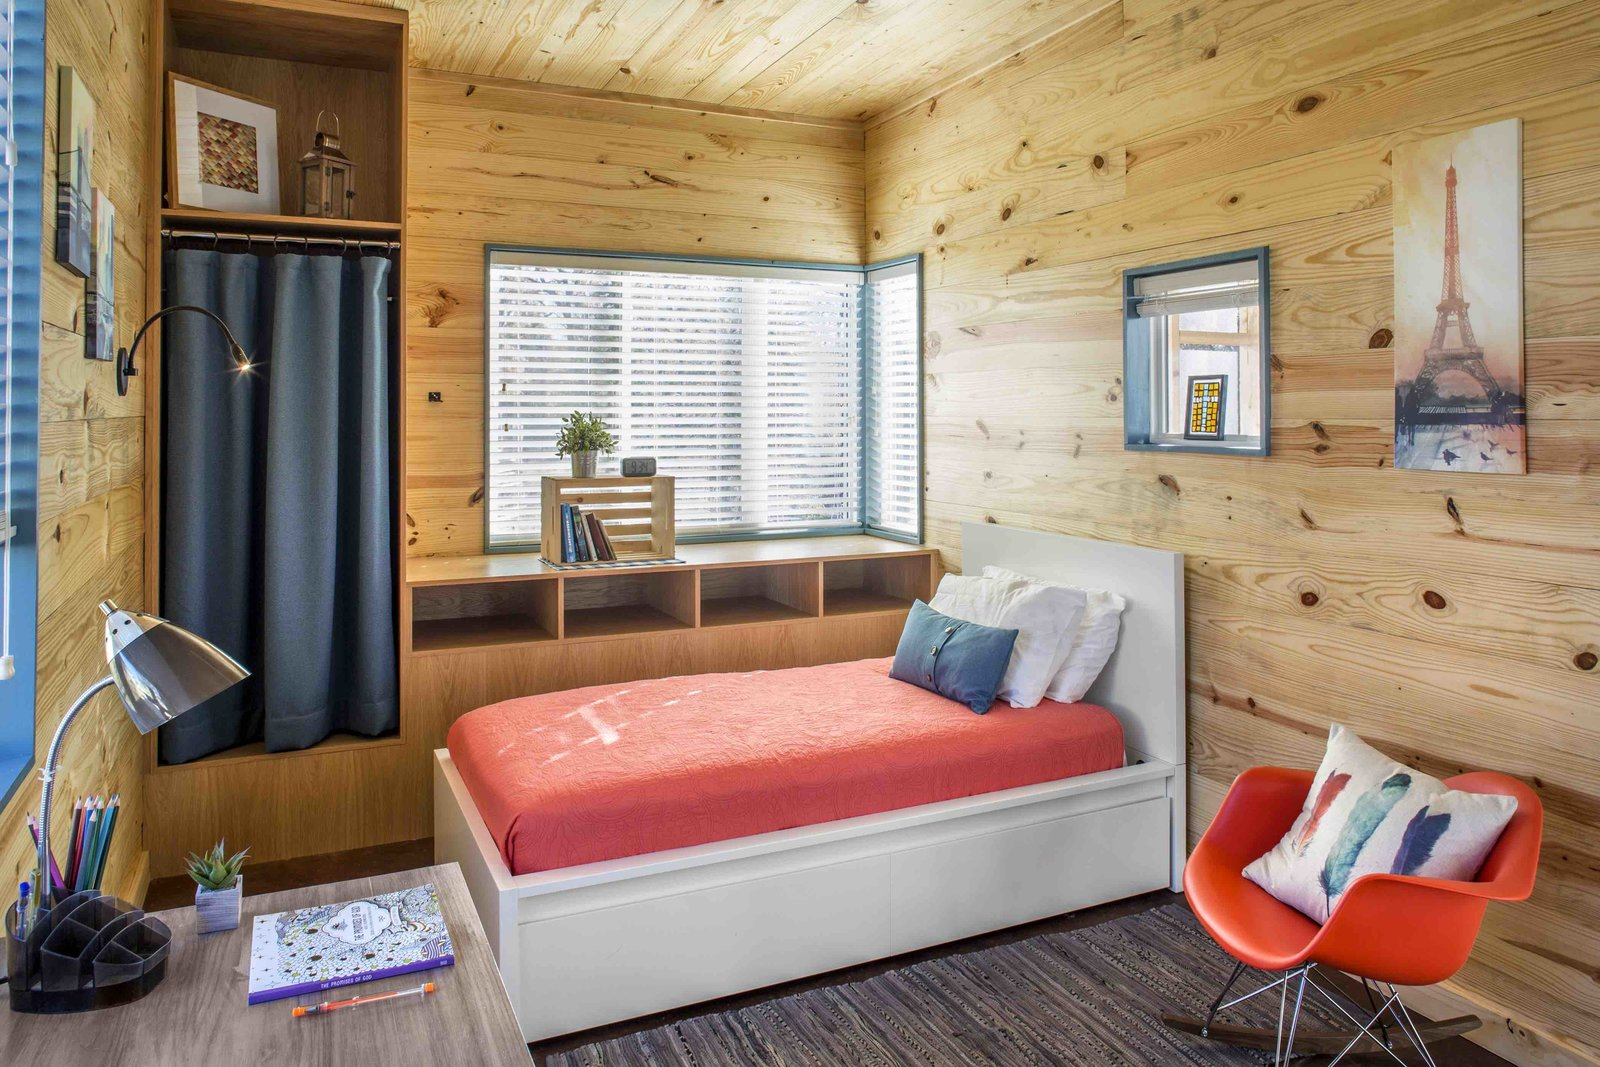 Community First! Village micro-home McKinney York bedroom